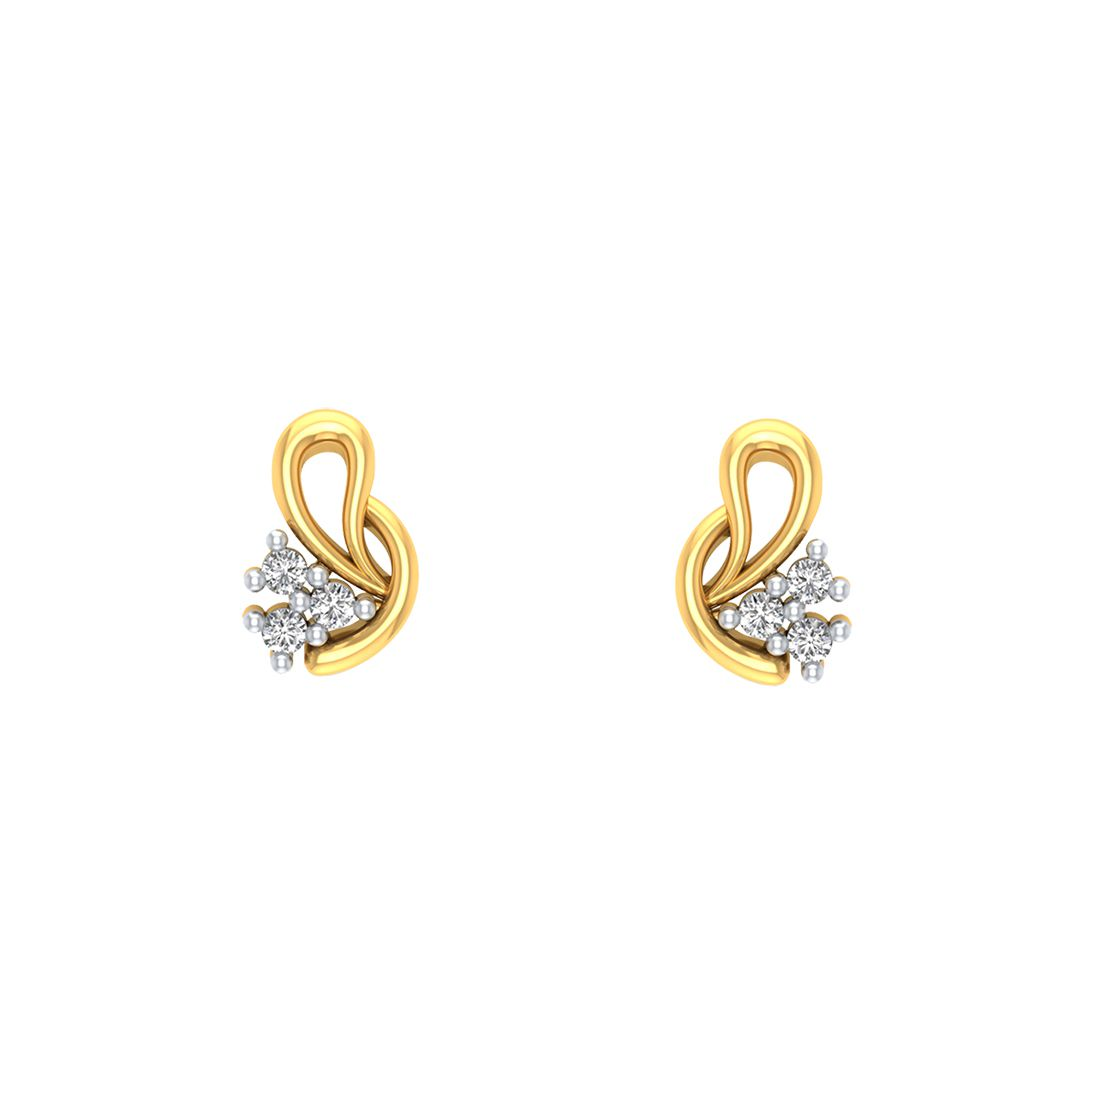 Amantran Gems And Jewels 14k Gold Diamond Studs